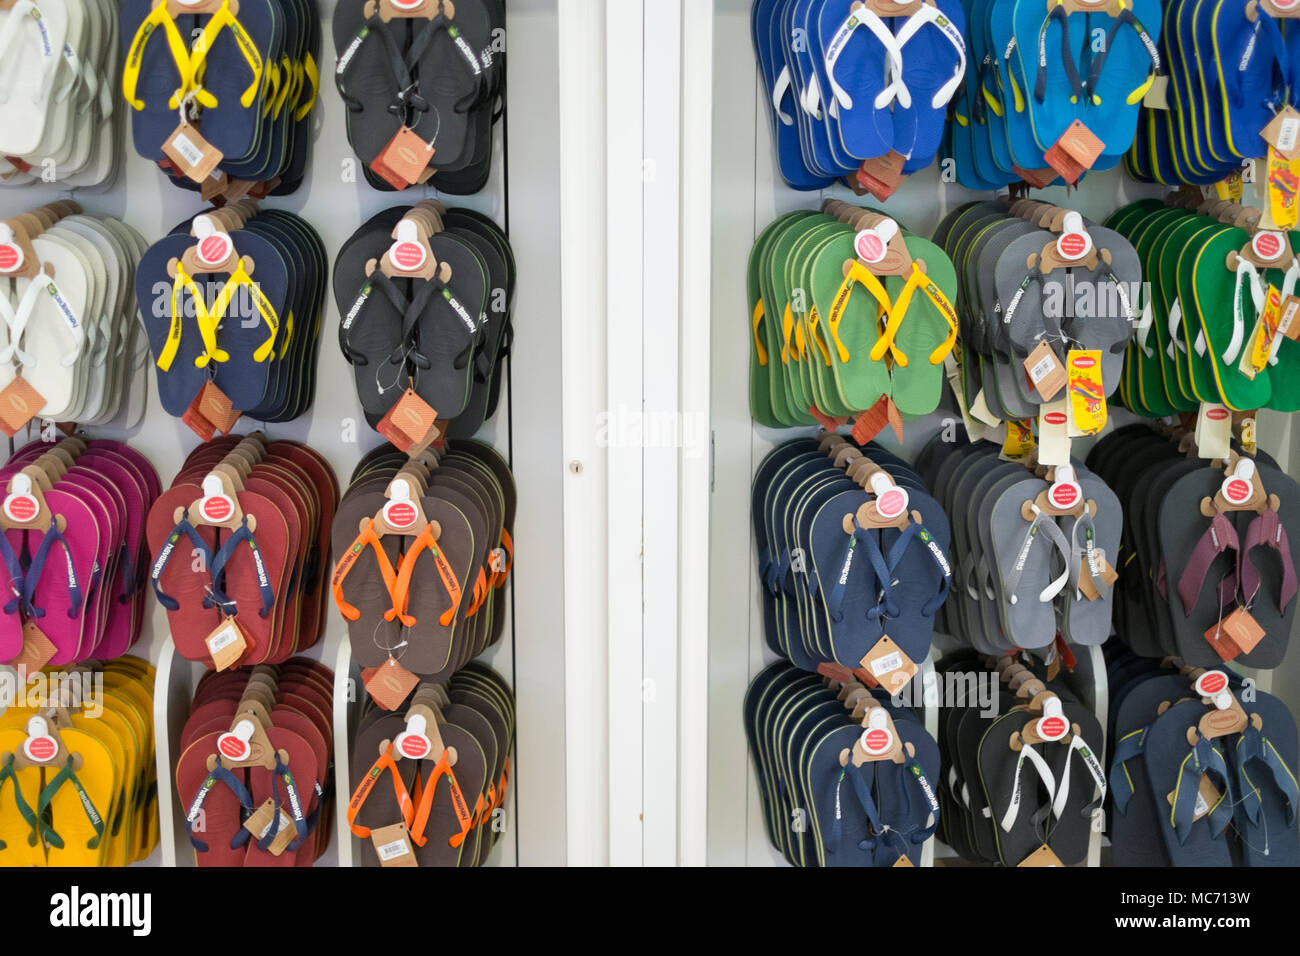 Holiday flip flops havaianas on sale at London Gatwick airport. - Stock Image